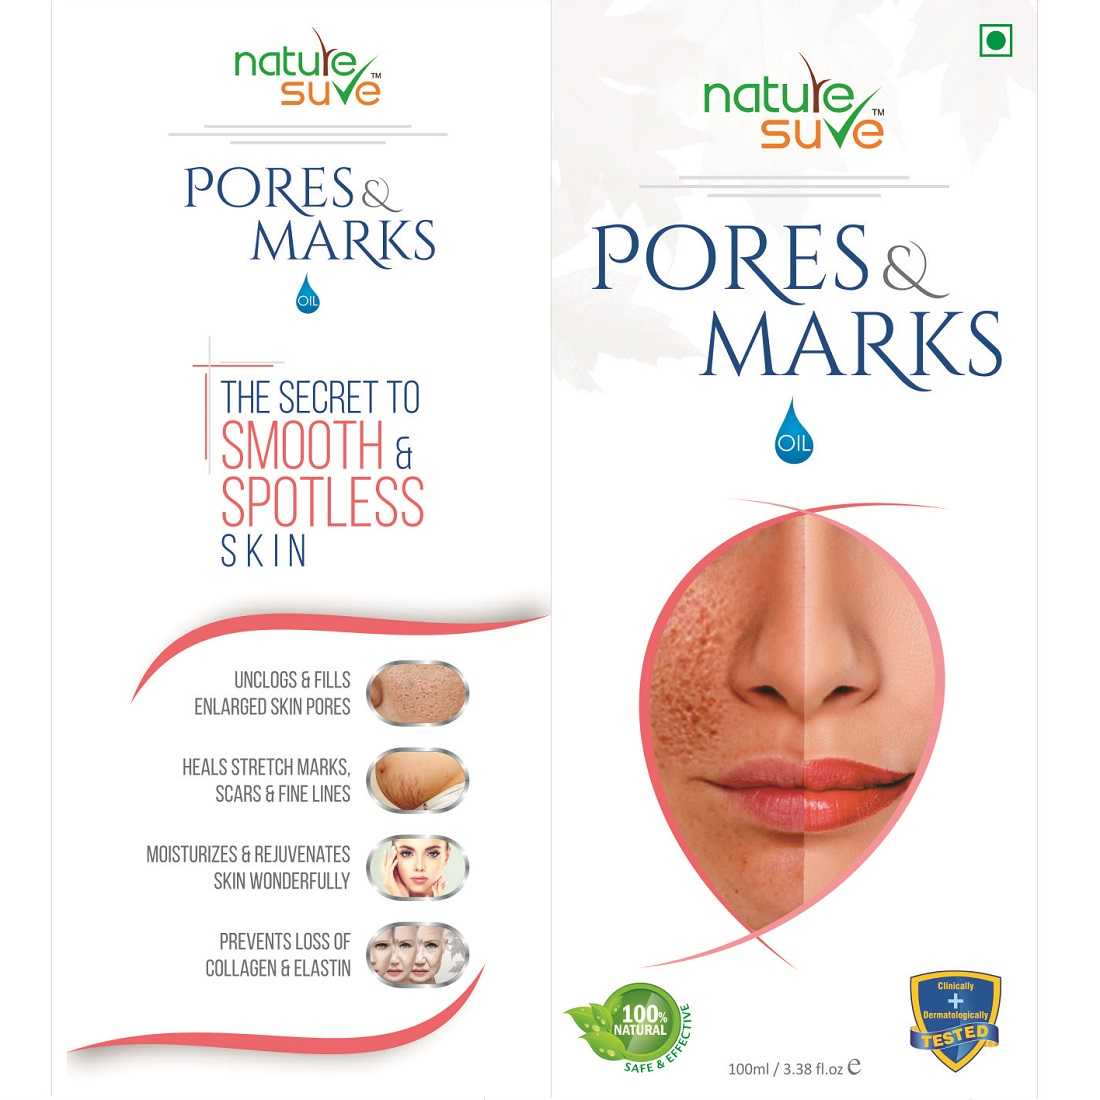 Nature Sure Pores and Marks Oil for Enlarged Pores & Stretch Marks in Men & Women - 1 Pack (100ml)